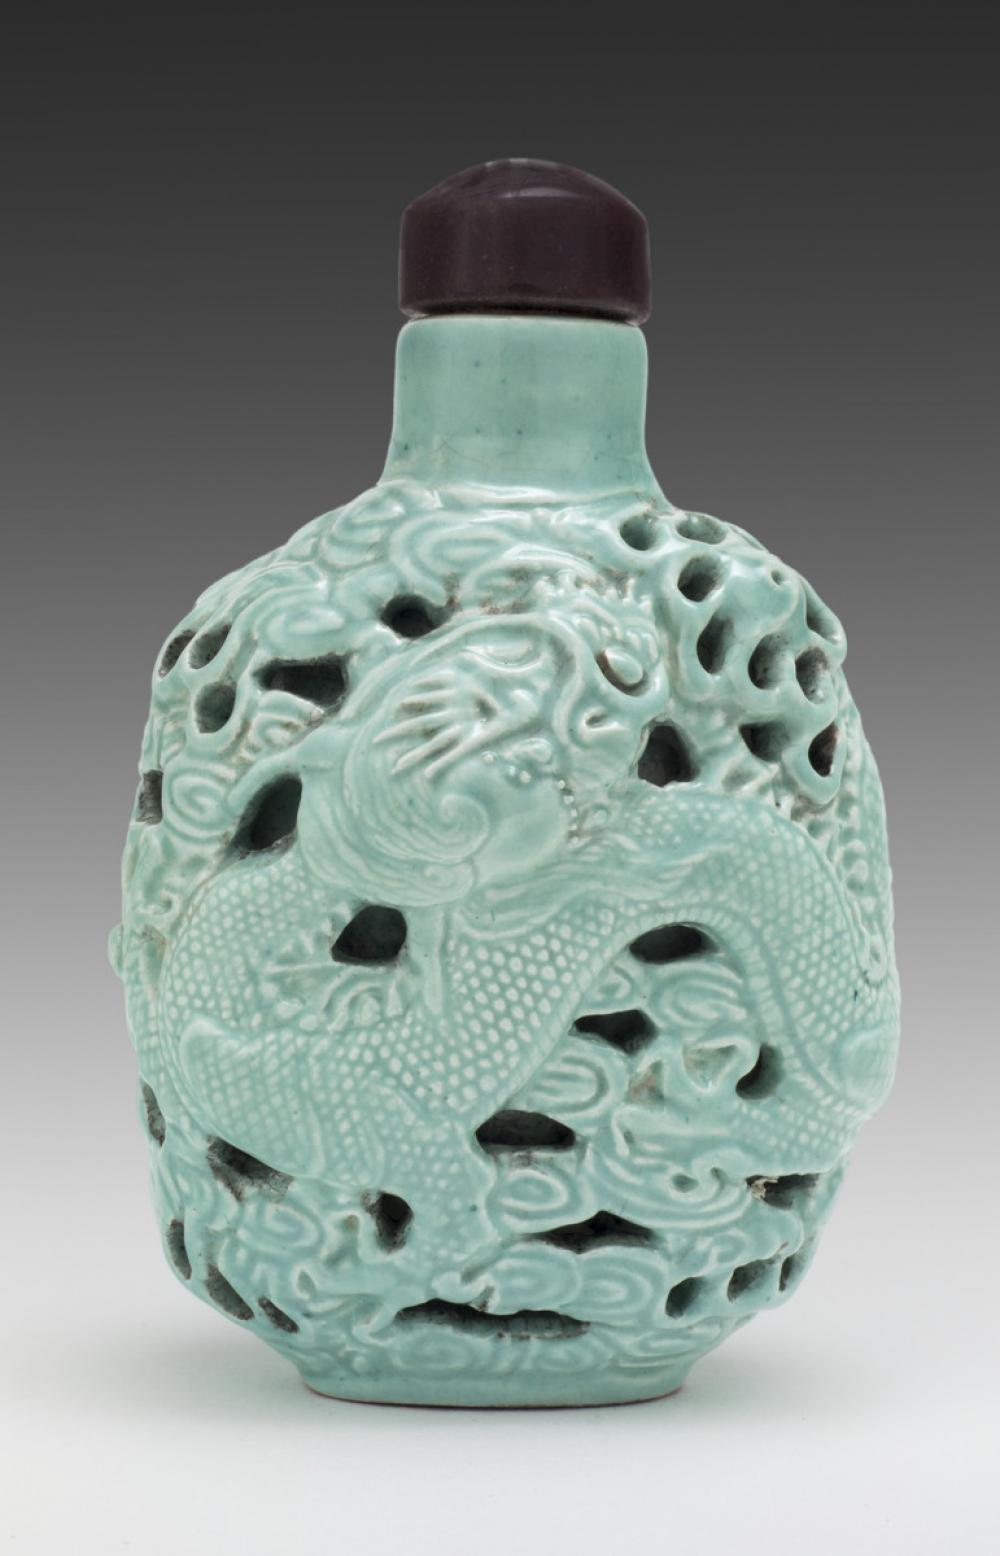 Chinese, Snuff bottle with openwork design of dragons